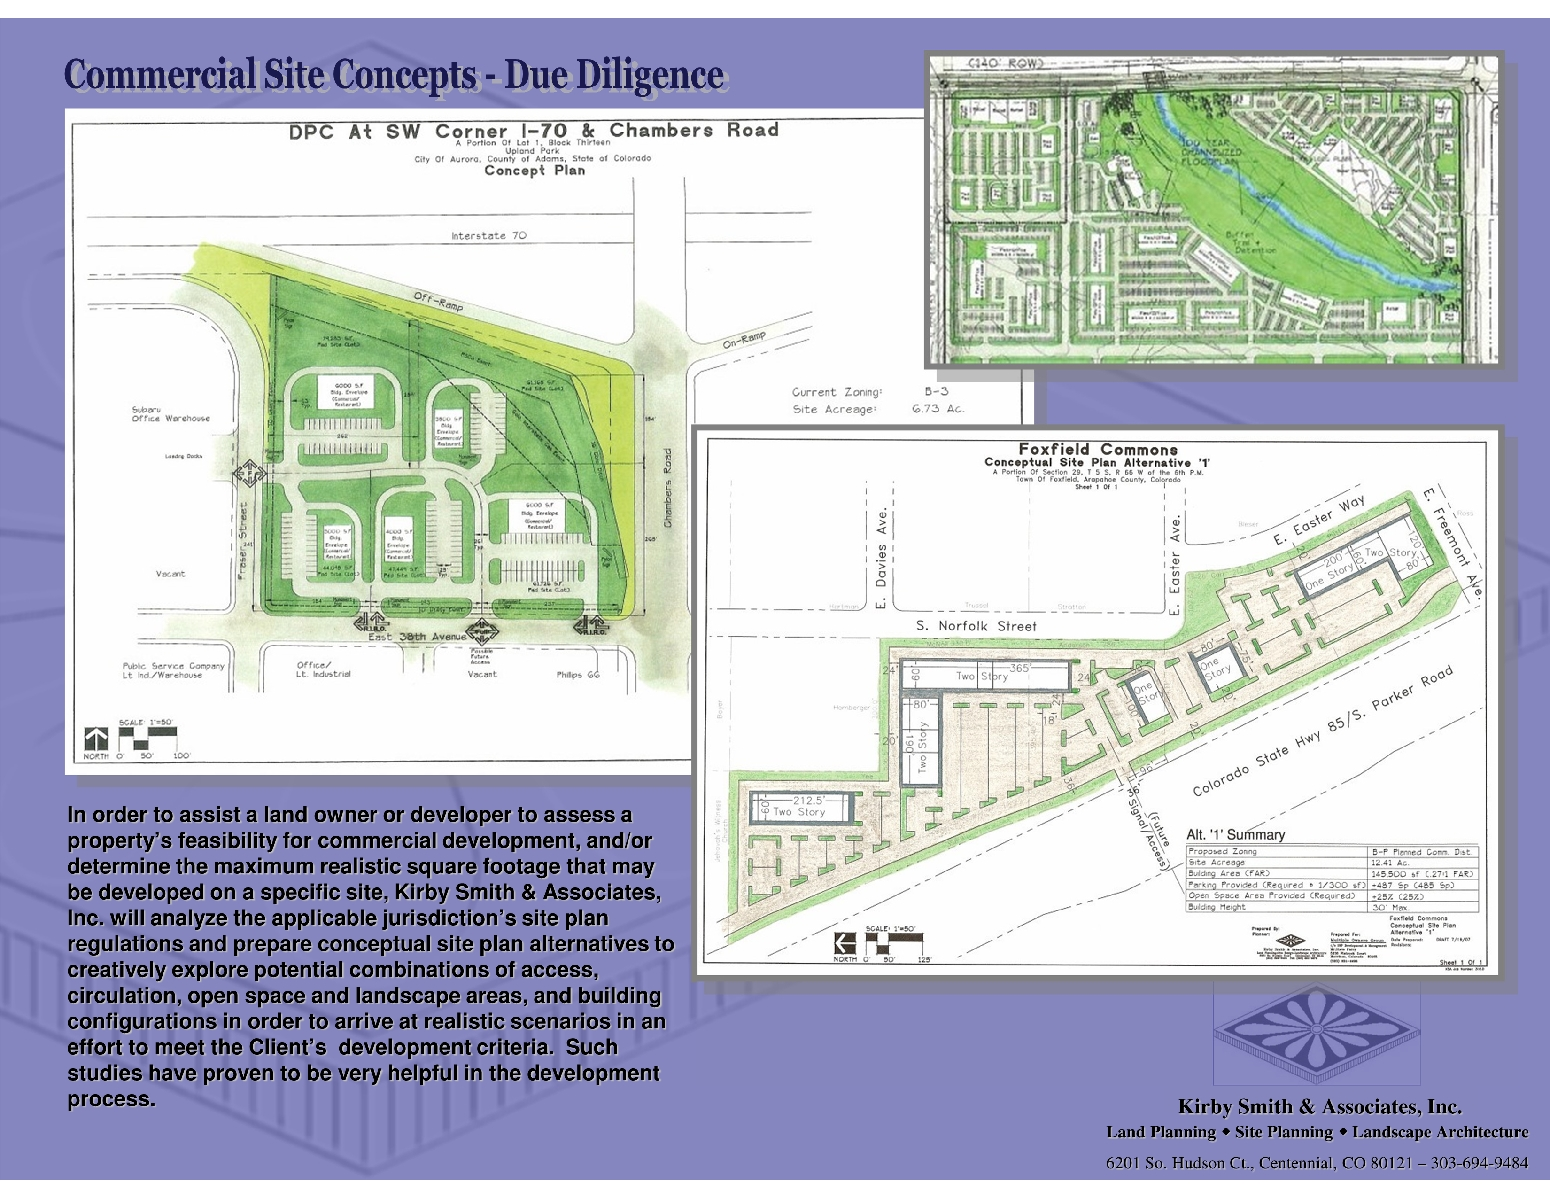 In order to assist a land owner or developer to assess a property's feasibility for commercial development, and/or determine the maximum realistic square footage that may be developed on a specific site, Kirby Smith & Associates, Inc. will analyze the applicable jurisdiction's site plan regulations and prepare conceptual site plan alternatives to creatively explore potential combinations of access, circulation, open space and landscape areas, and building configurations in order to arrive at realistic scenarios in an effort to meet the Client's  development criteria.  Such studies have proven to be very helpful in the development process.